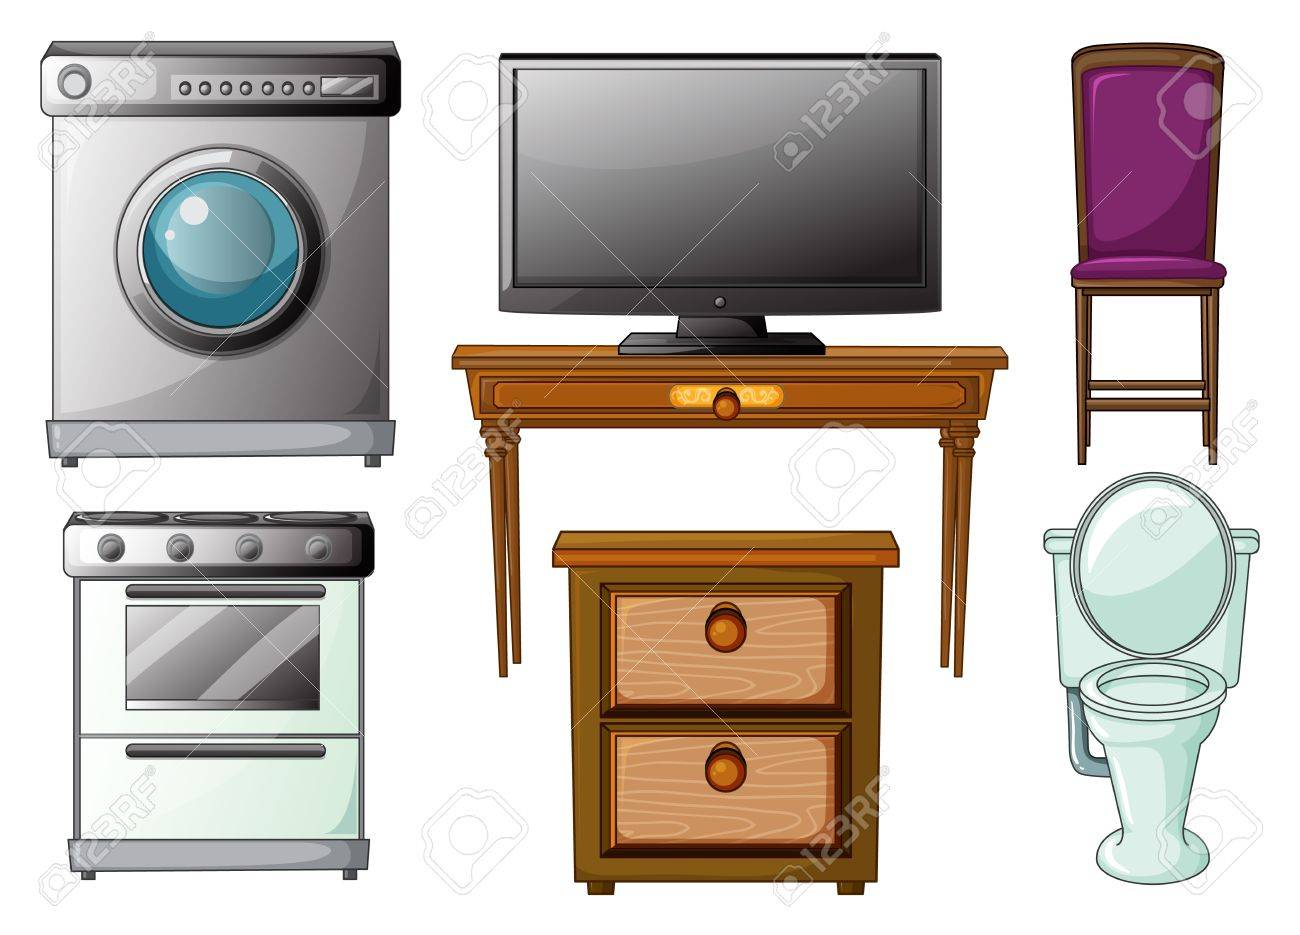 Illustration of house appliances and furnitures on a white background Stock Vector - 17358153